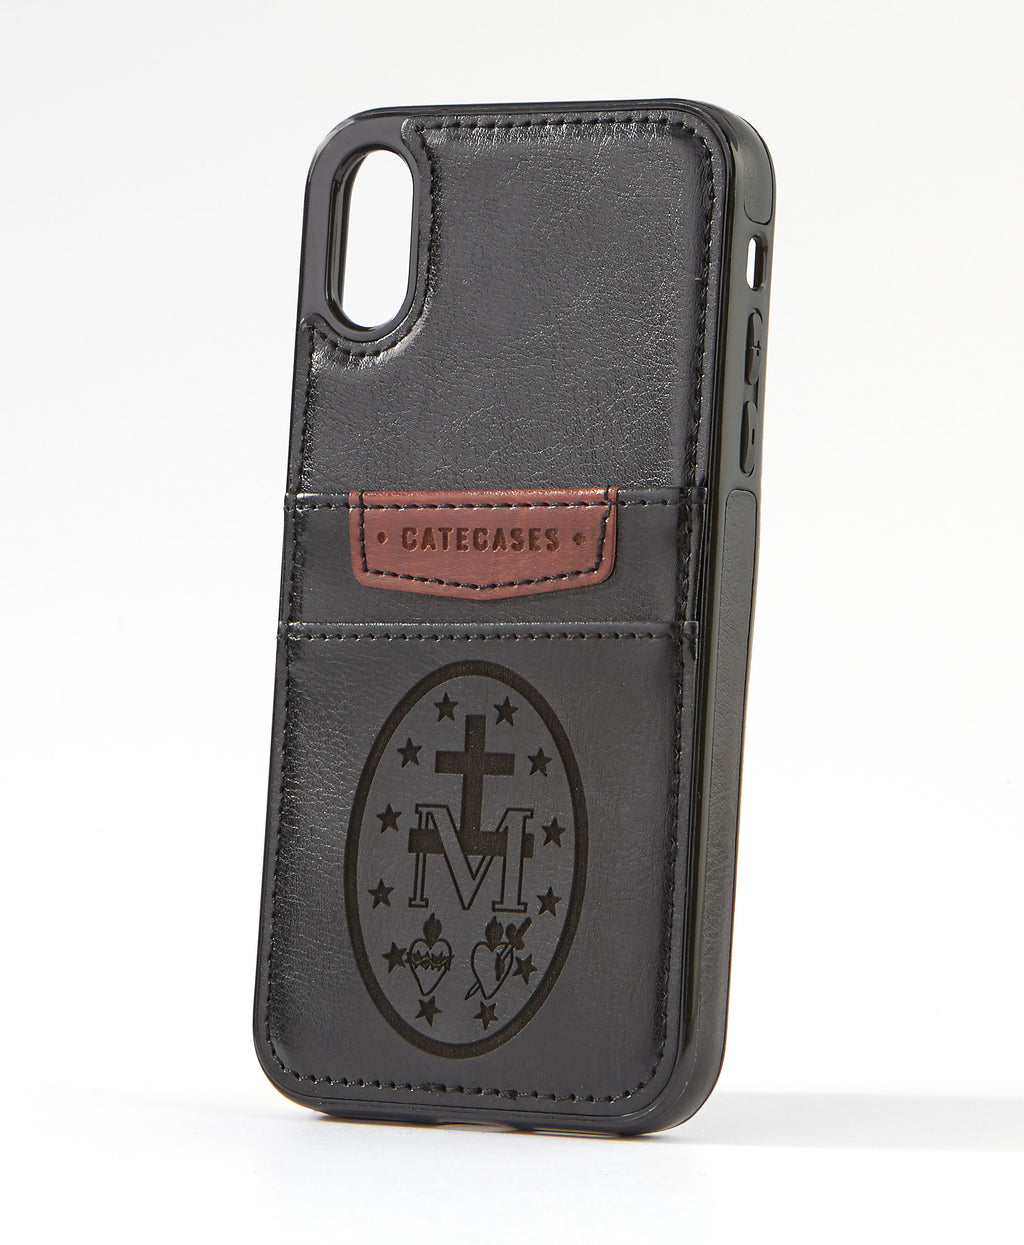 Miraculous Medal Black Leather Card Case for iPhone X/XS